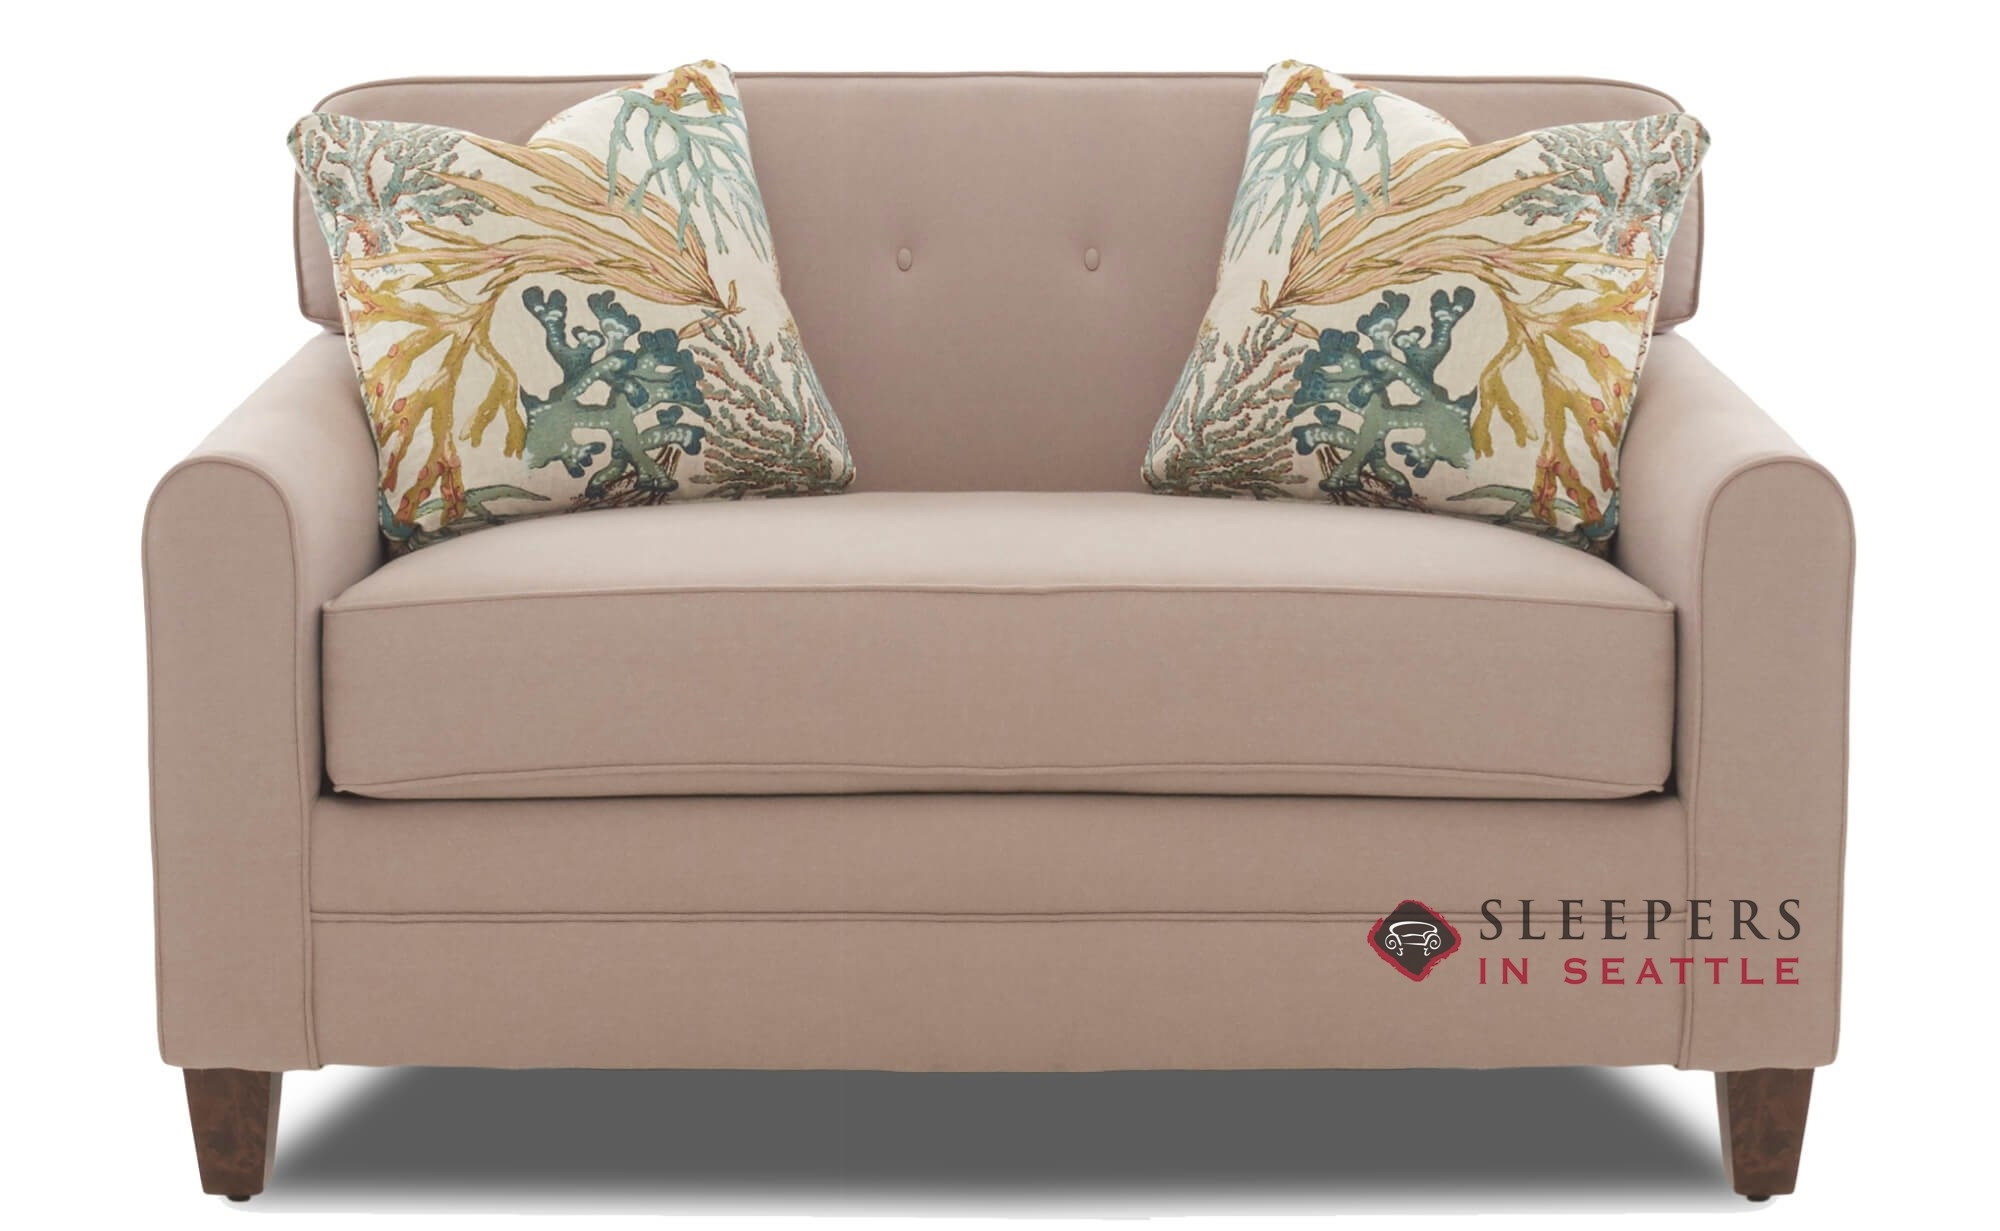 Sofa Beds Perth Savvy Perth Chair Sleeper Sofa